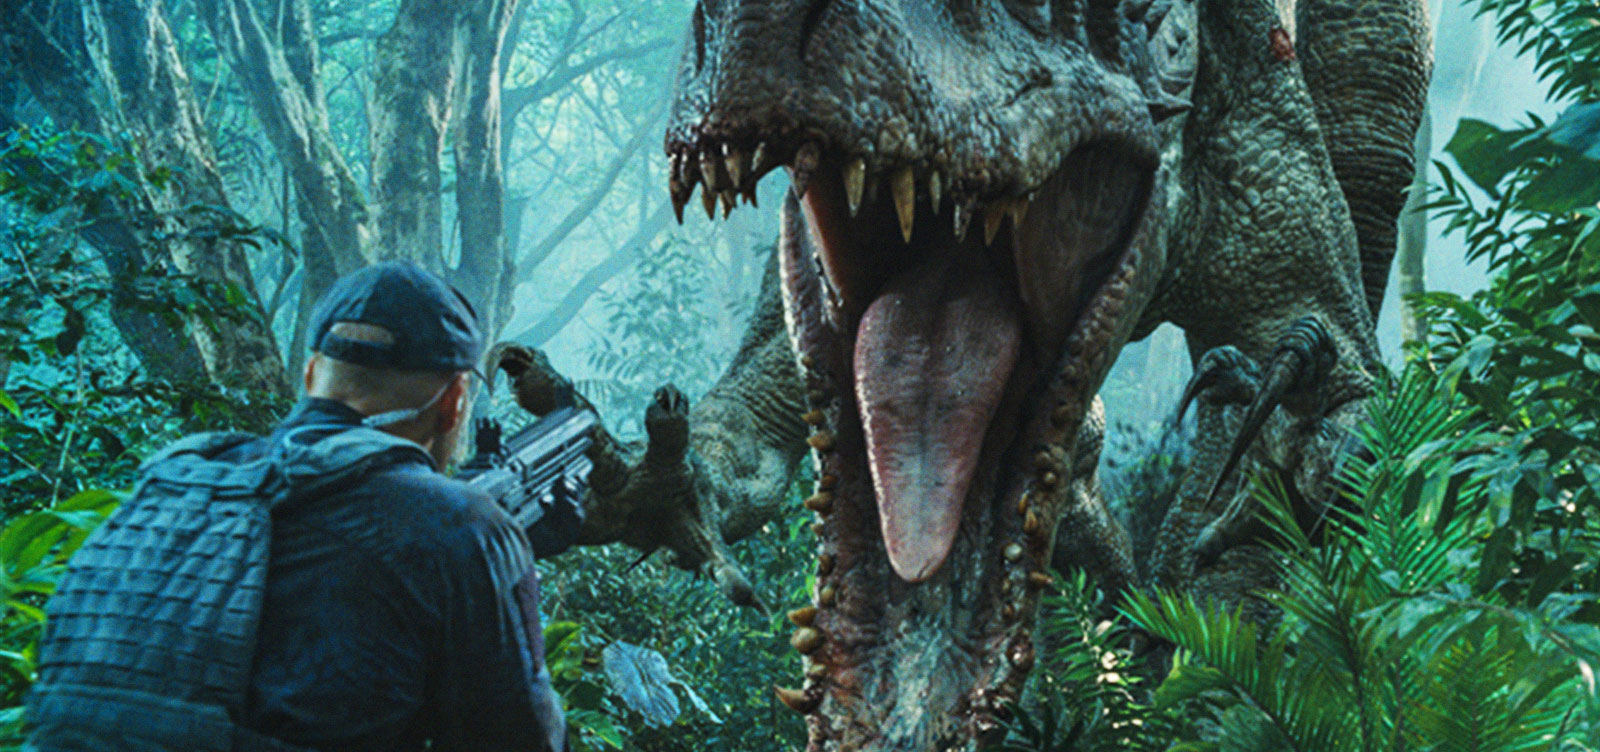 Jurrasic_World_Review_Images_v02